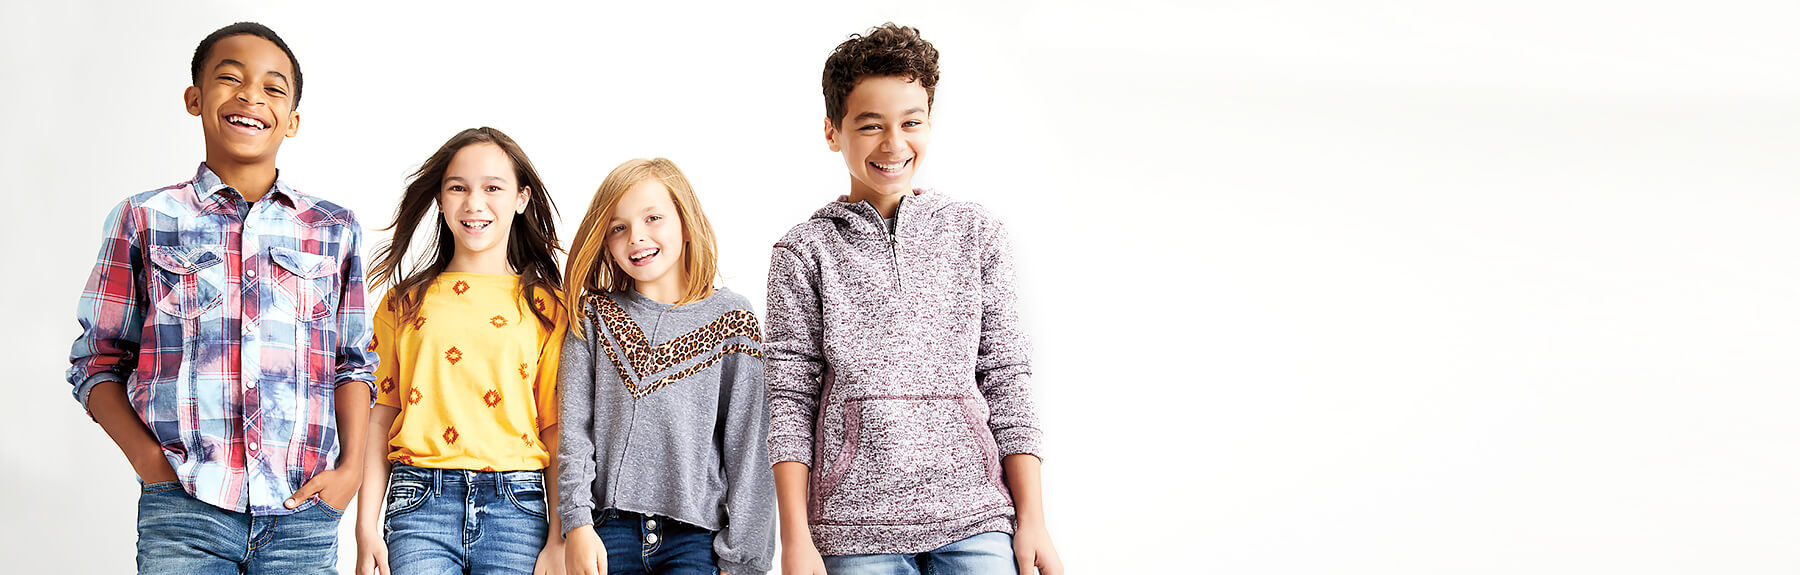 Group of kids wearing new fall clothing from Buckle.